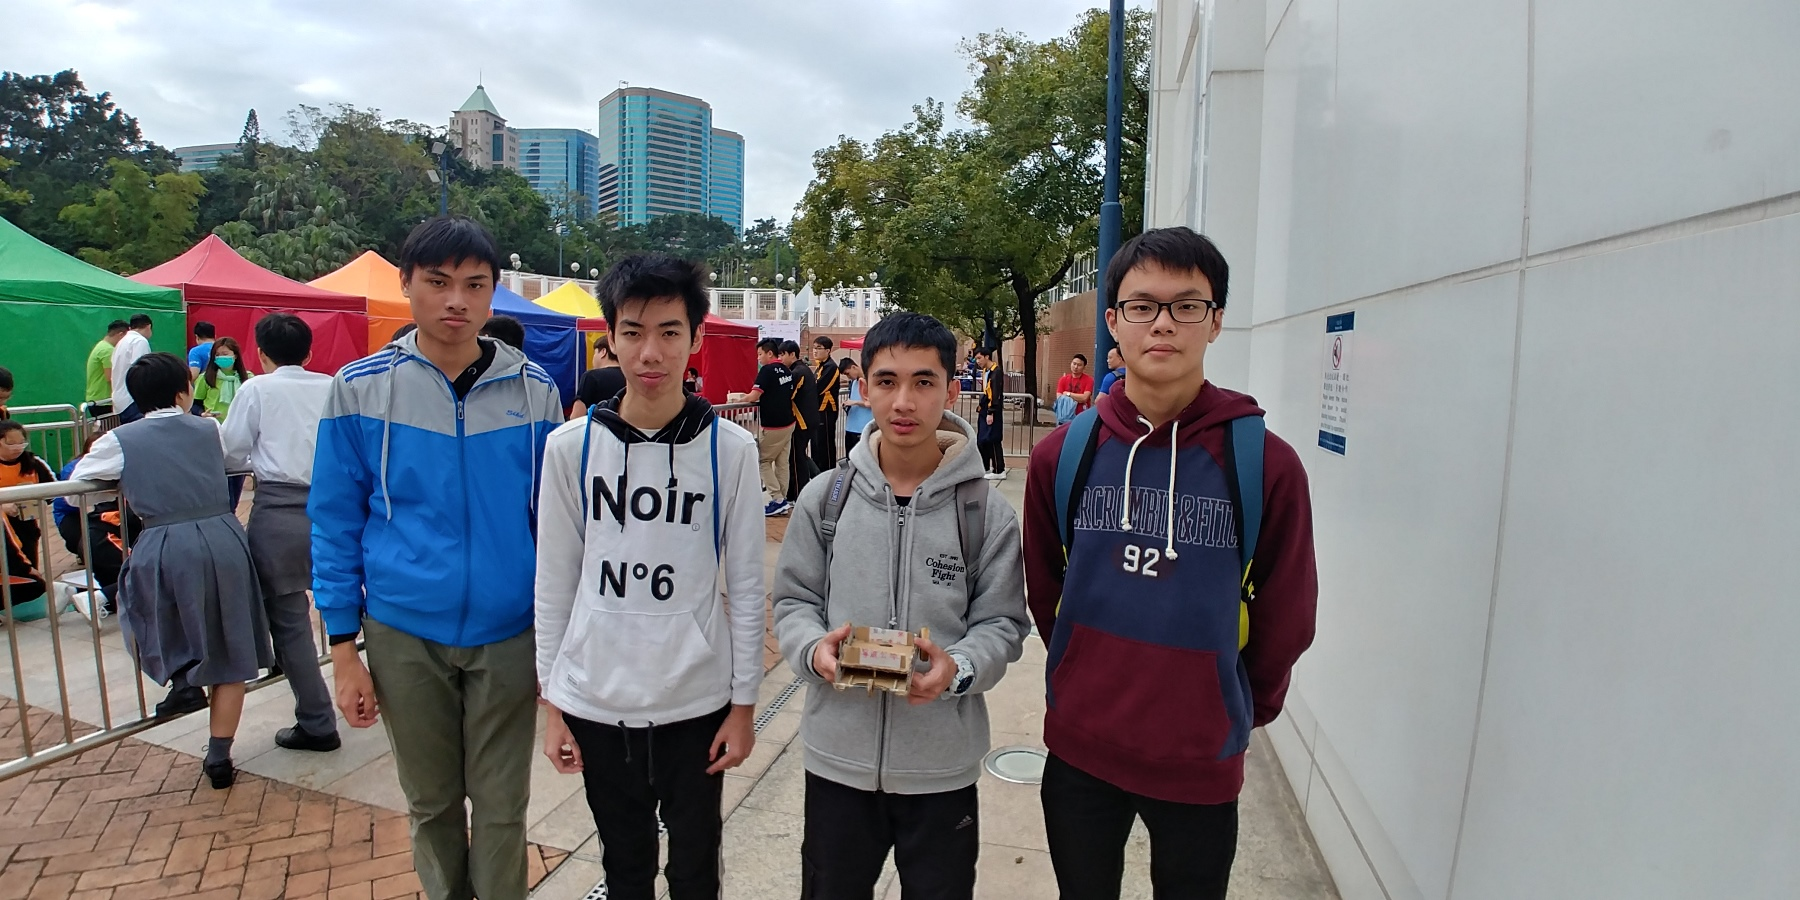 http://npc.edu.hk/sites/default/files/20190120_112952_hdr.jpg